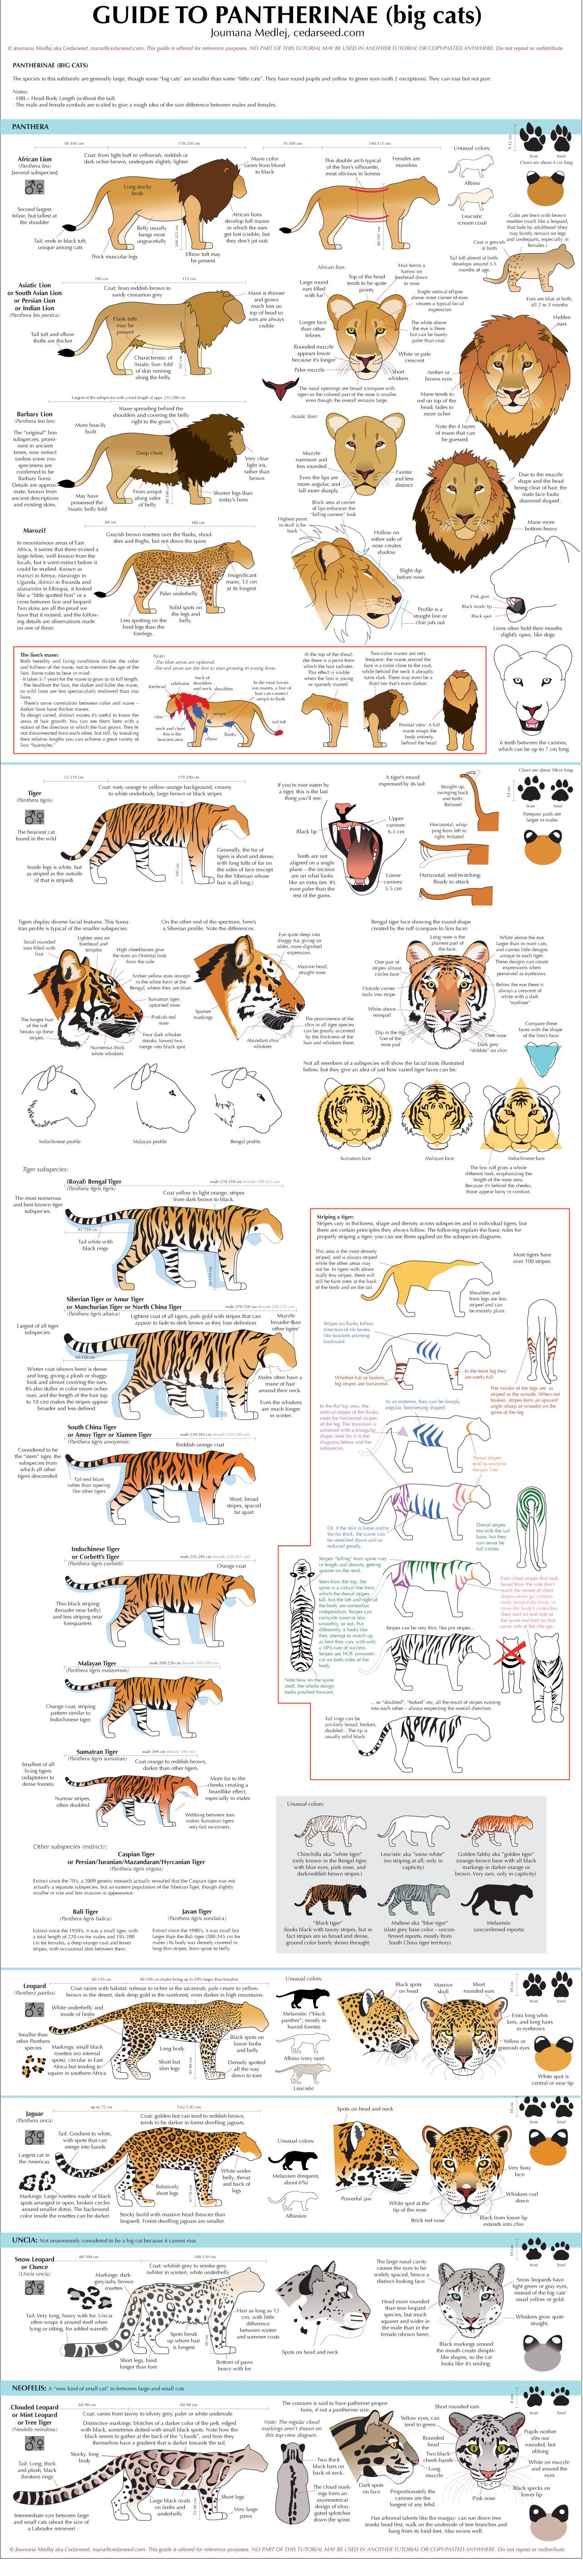 big cat descriptions